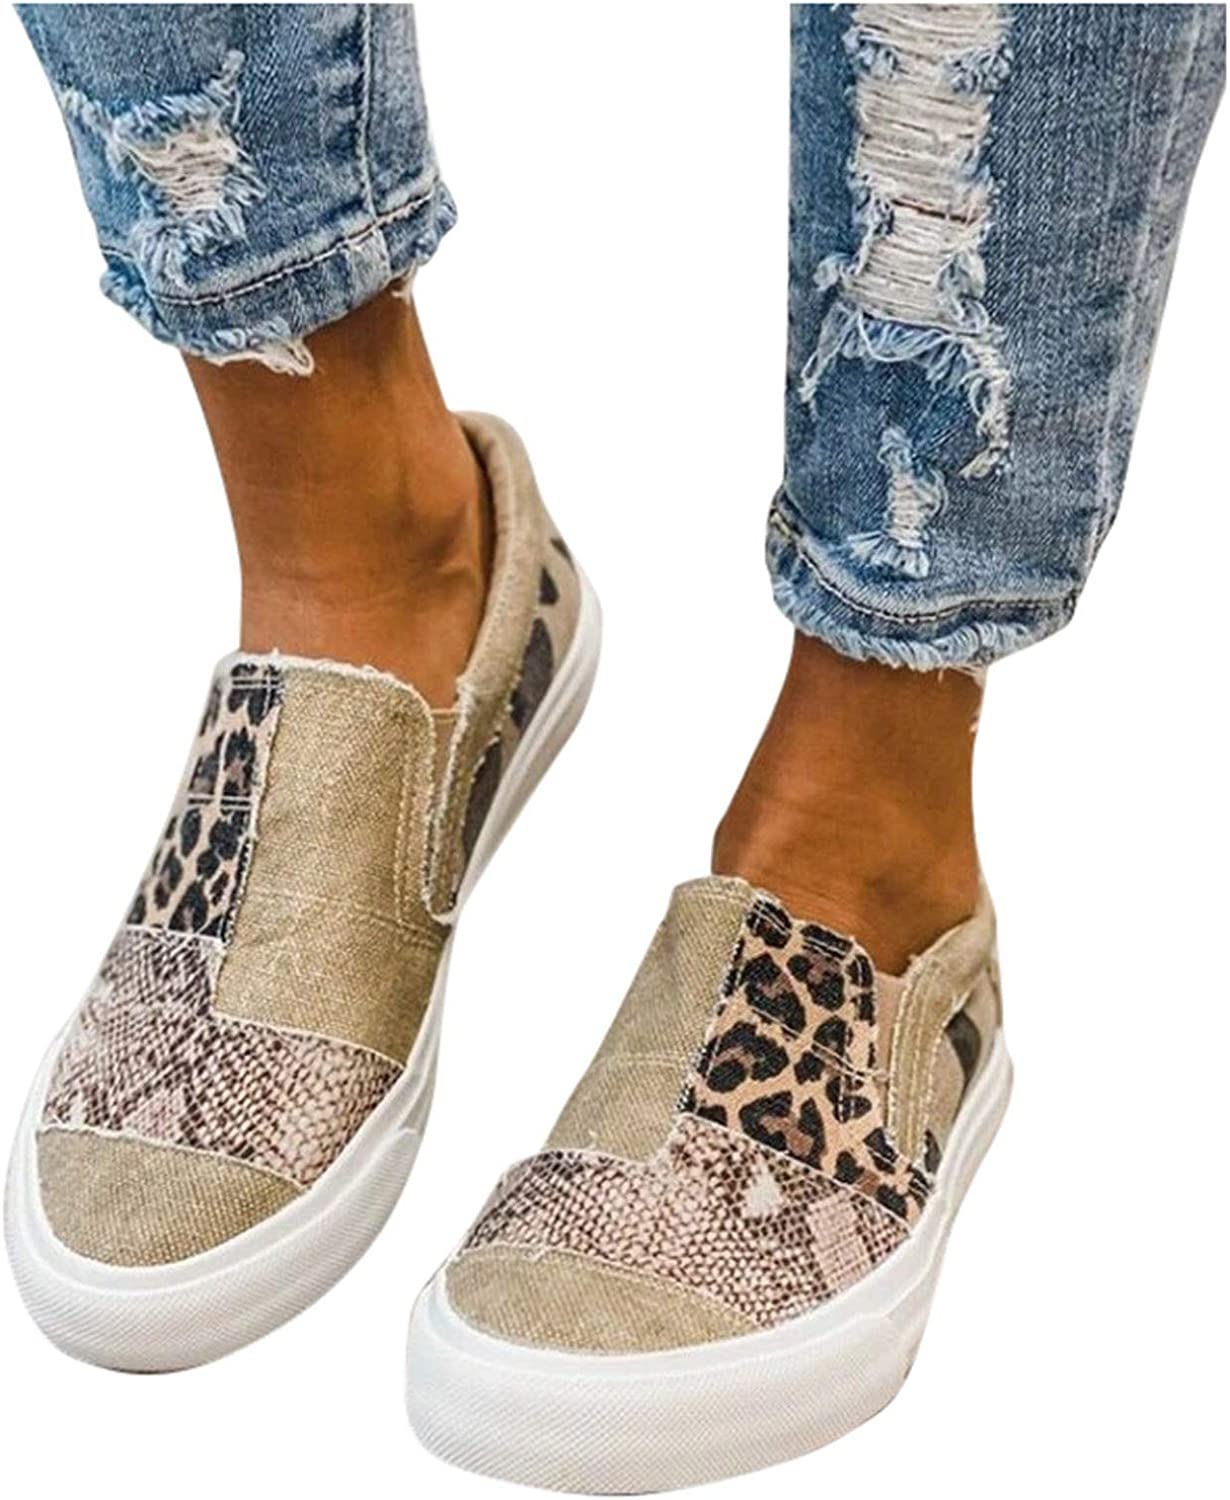 SALIFUN Canvas Shoes for Women,2021 Fashion Comfy Platform Sneaker Shoes Lace Up Slip On Trainers Casual Summer Daily Loafers